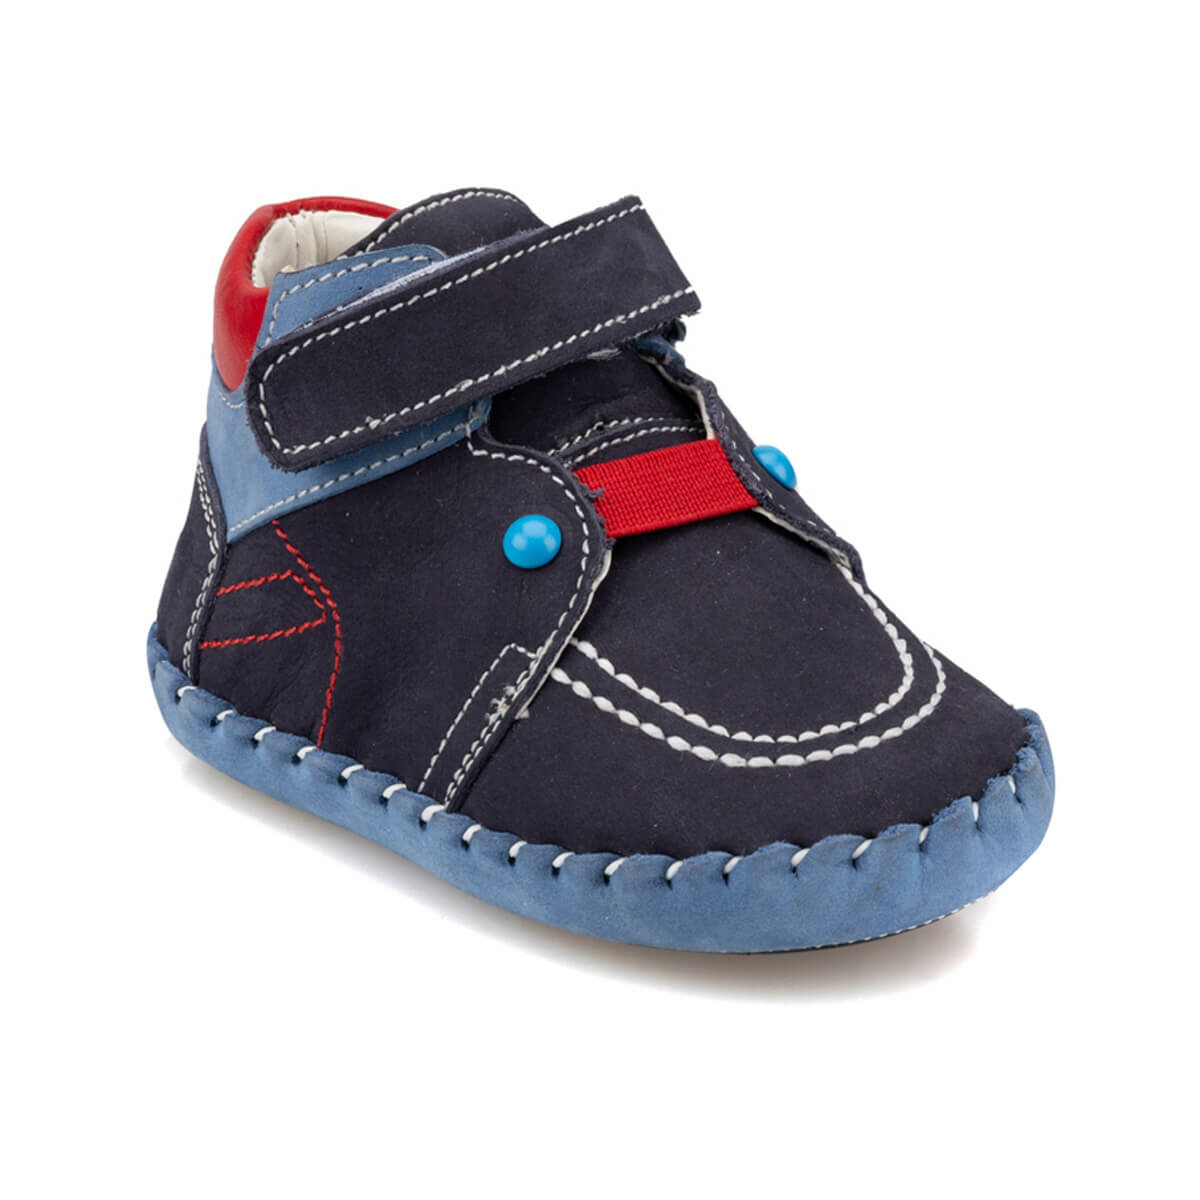 FLO 92.511701.I Navy Blue Male Child Sports Shoes Polaris